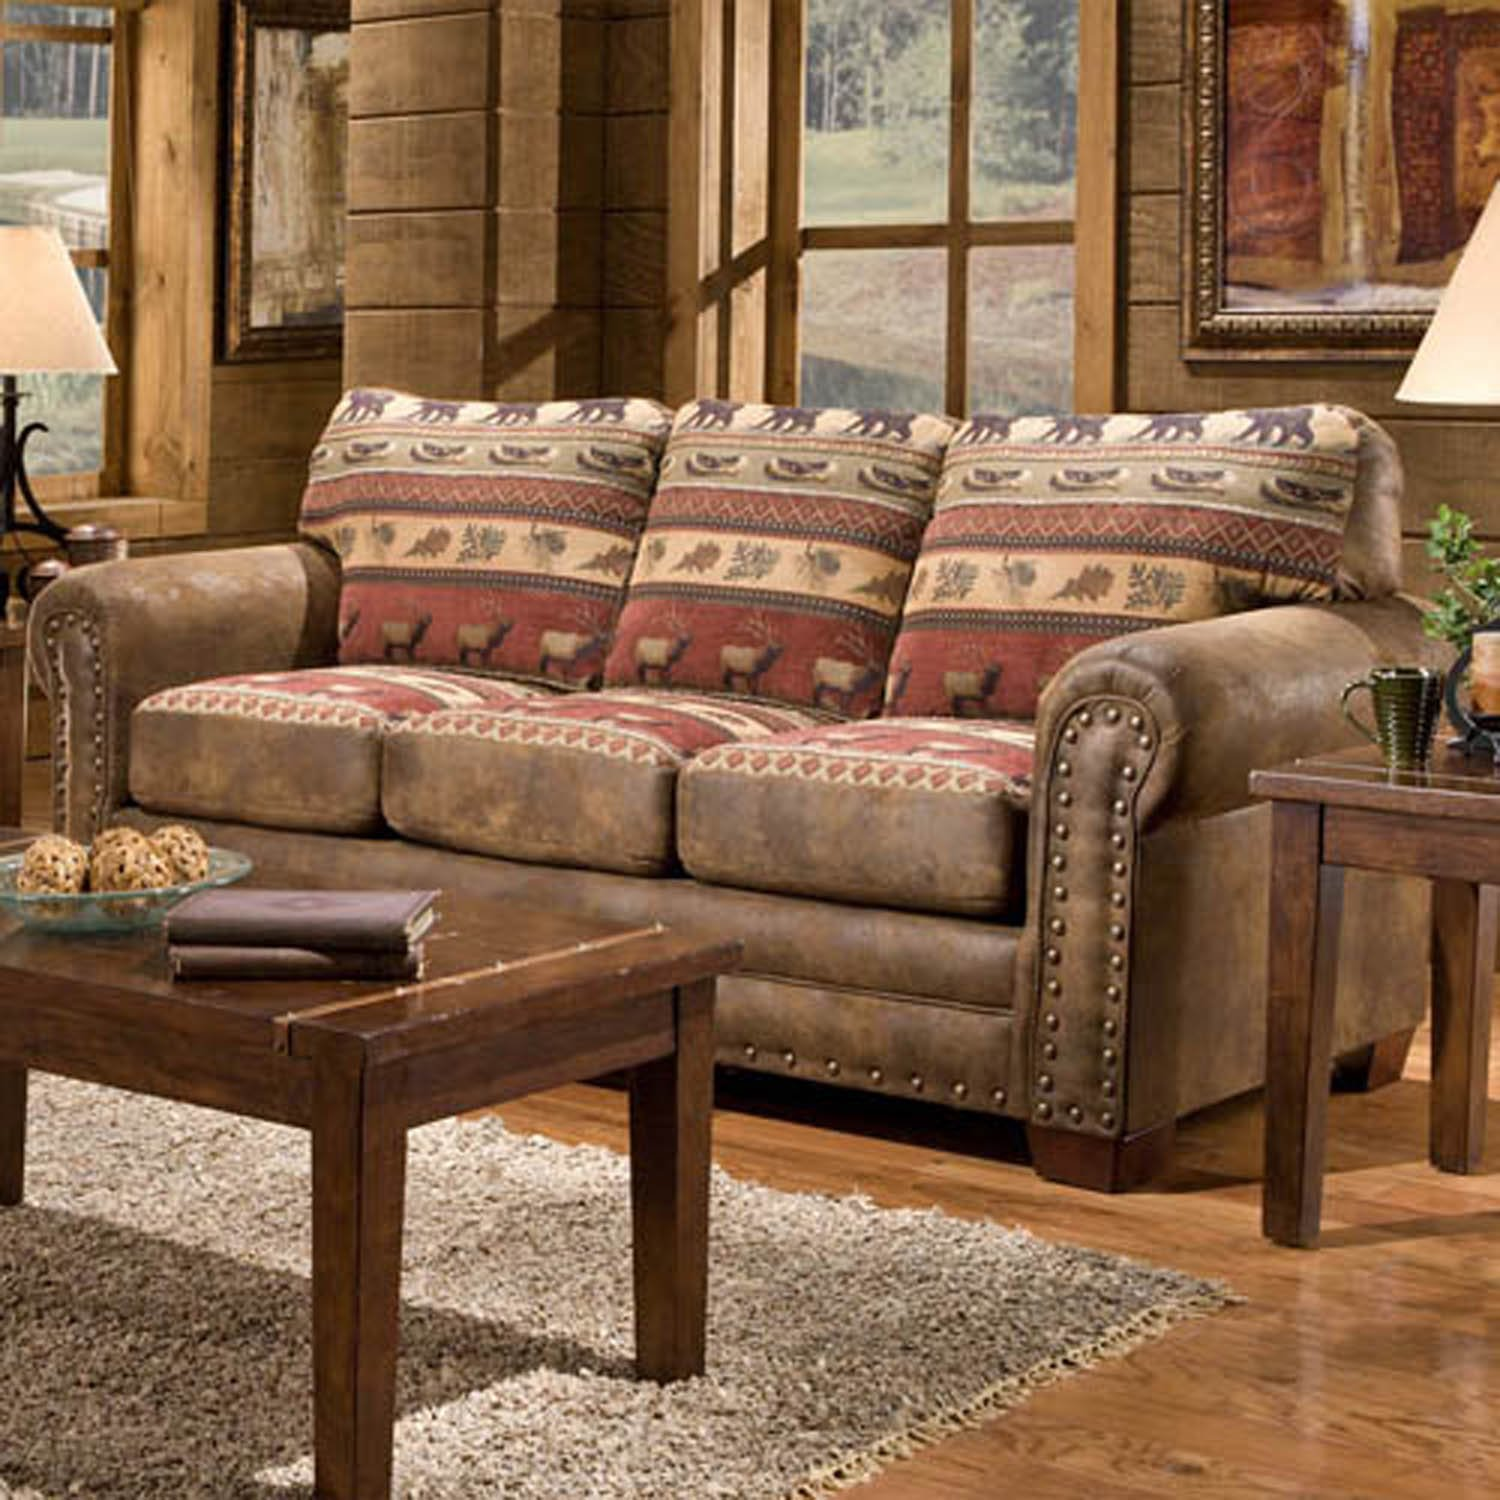 Amazon.com: American Furniture Classics Sierra Lodge Sleeper Sofa ...